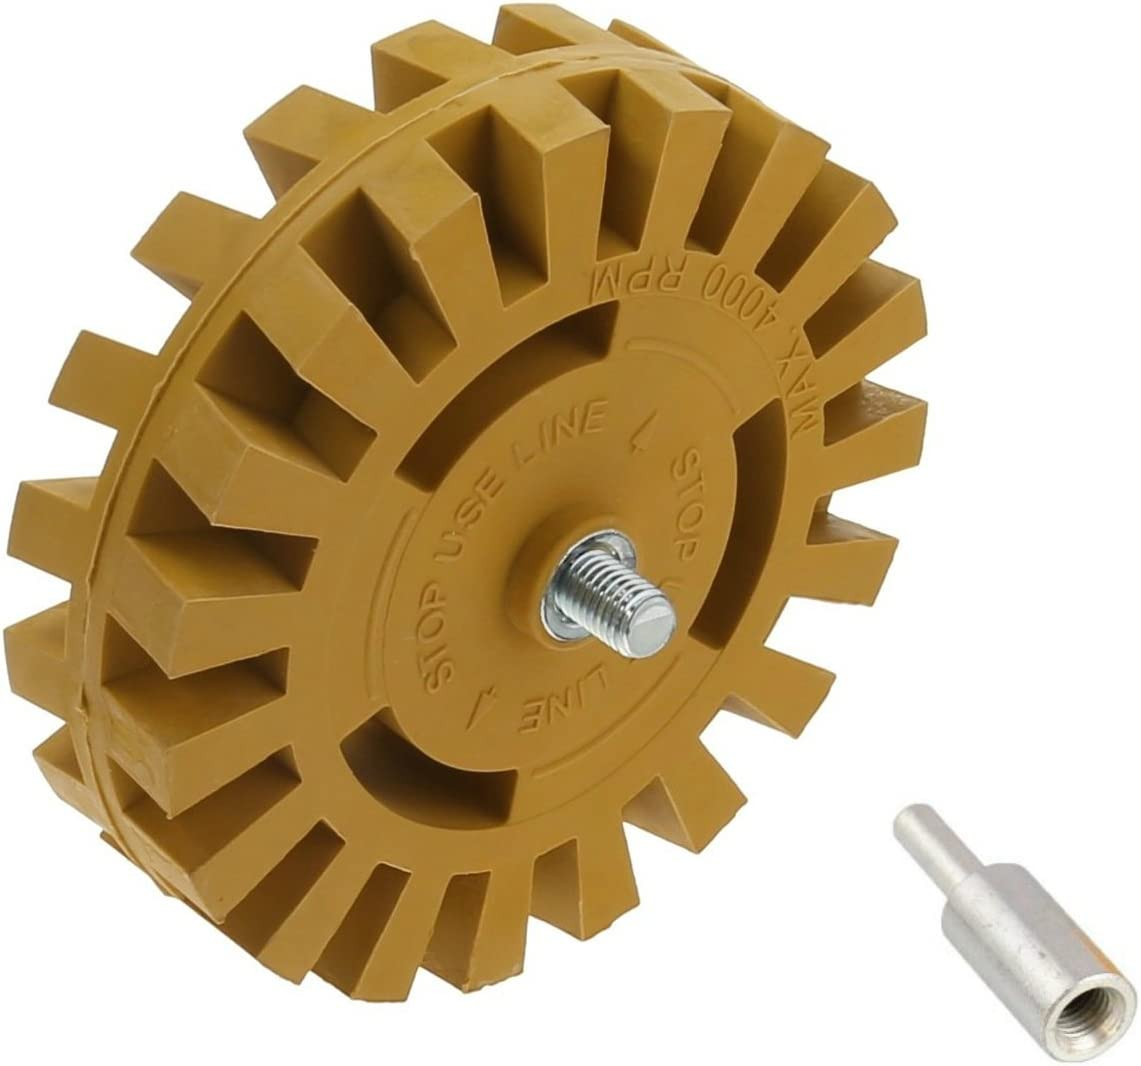 4 inch Rubber Pinstripe Decal Removal Eraser Wheel w// Power Drill Arbor Adapter